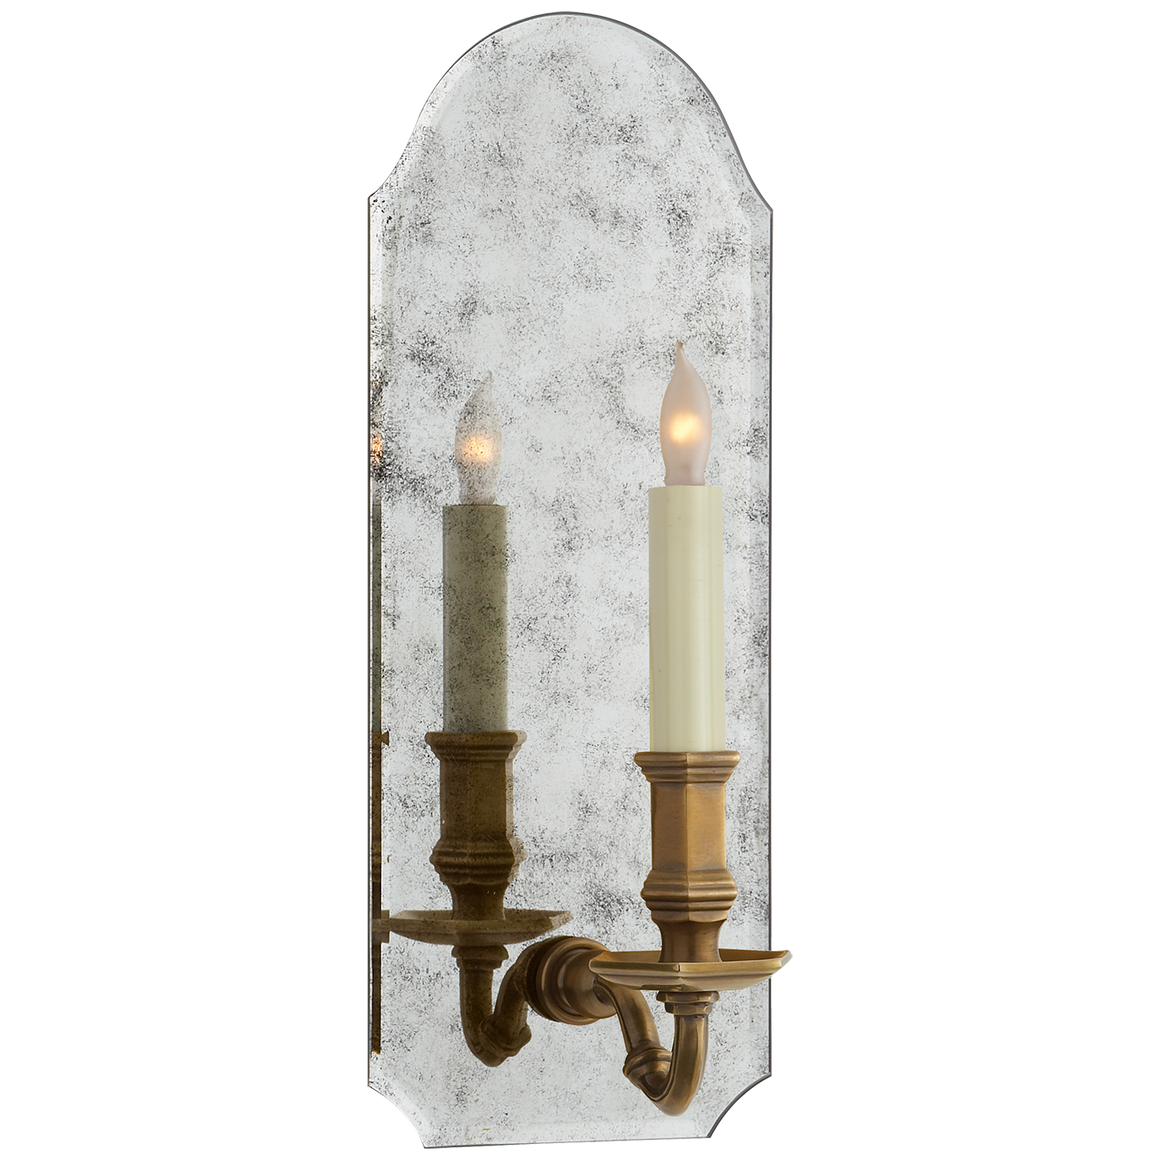 Kensington Medium Single Sconce